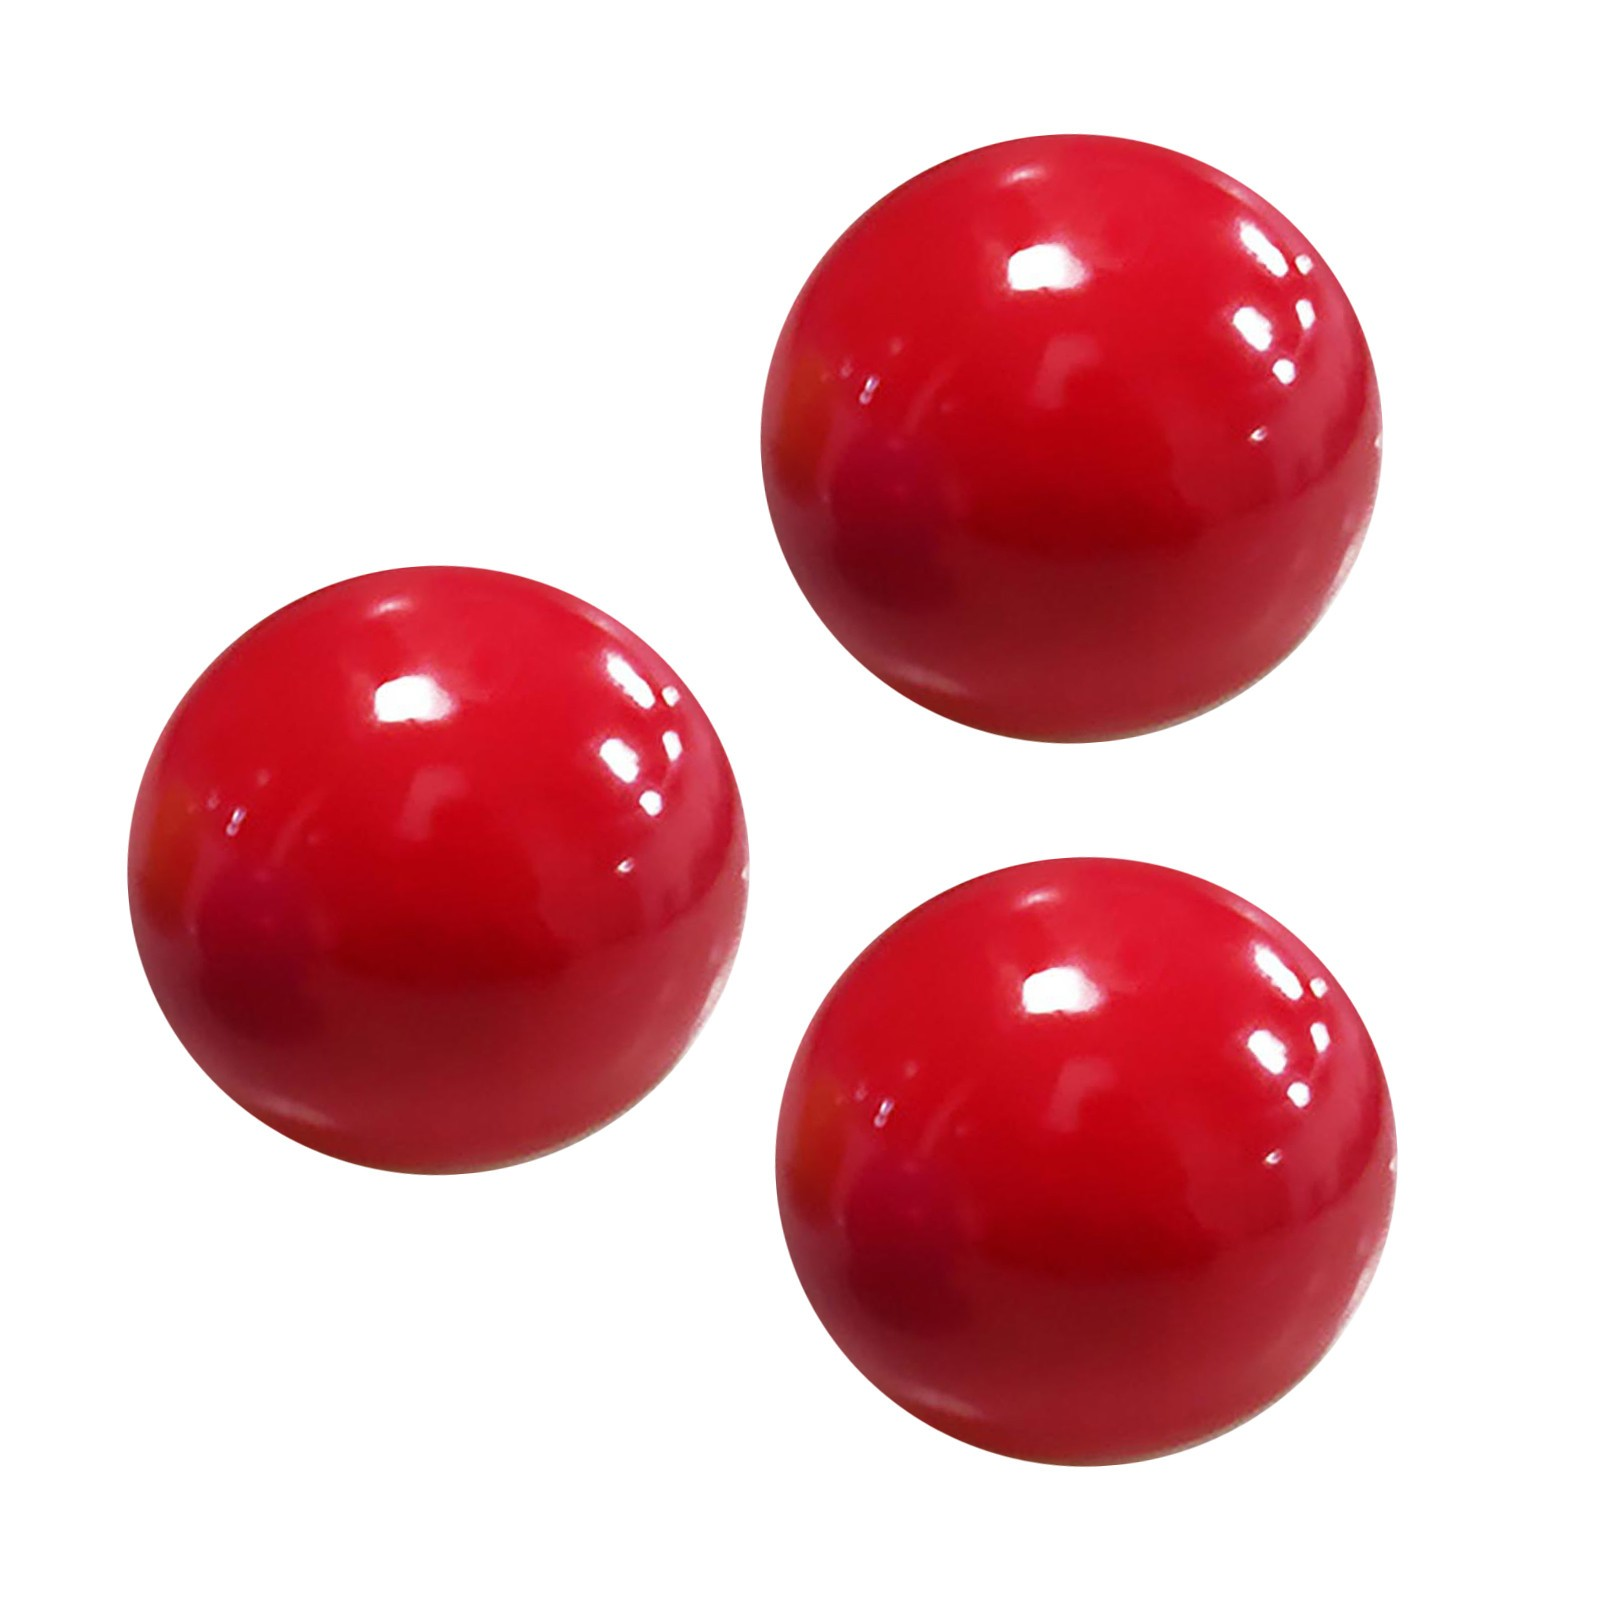 Relief-Toy Tossing-Ball Sticky-Target-Ball-Stress Ceiling Gift Adults Kids Novelty Hot img2